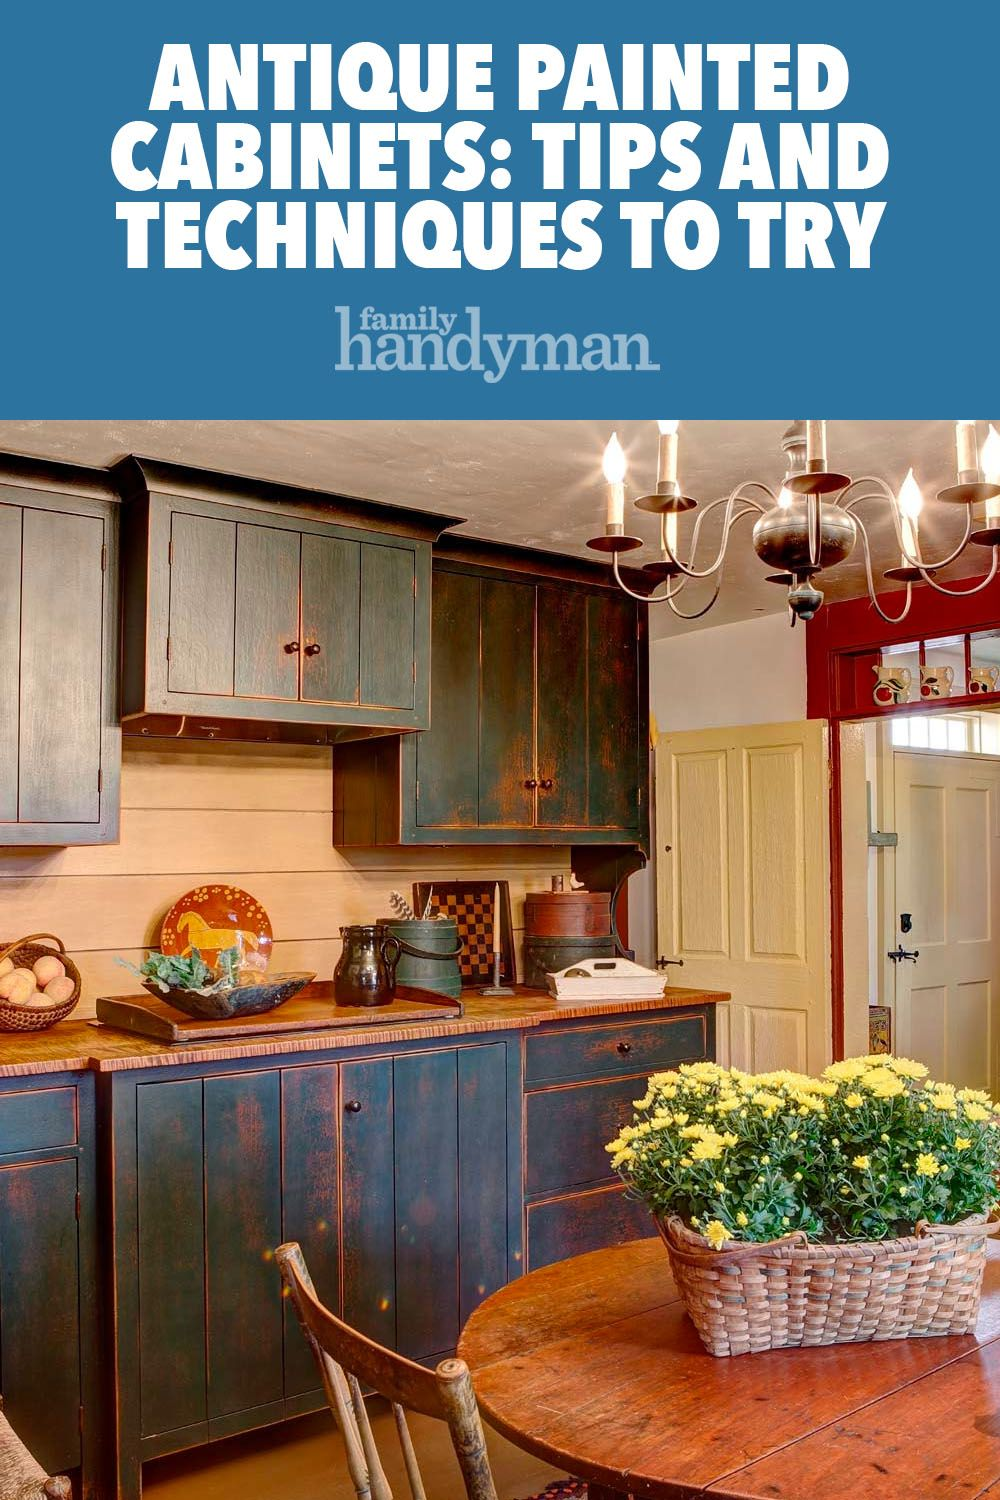 Antique Painted Cabinets: Tips and Techniques to Try at ...